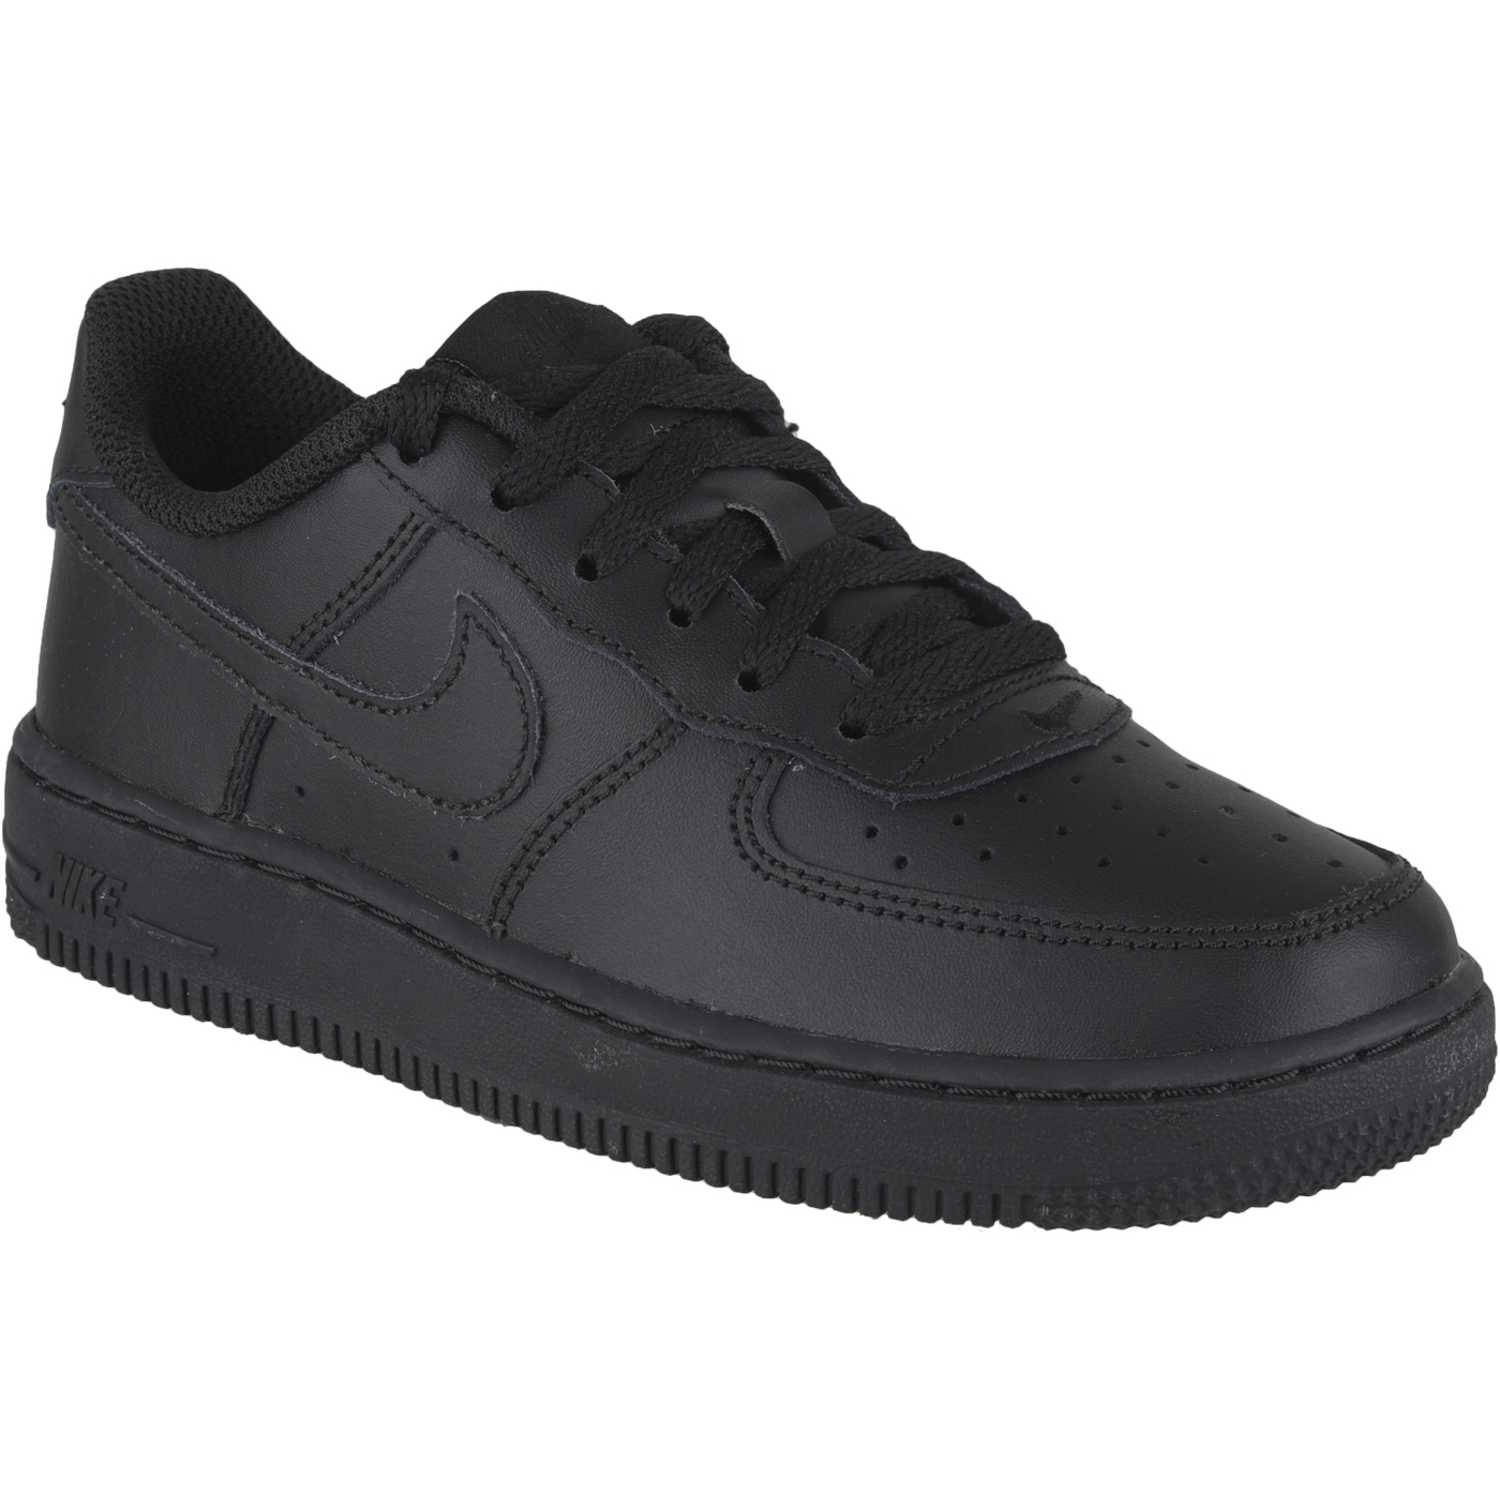 Casual de Niño Nike Negro / negro force 1 bp